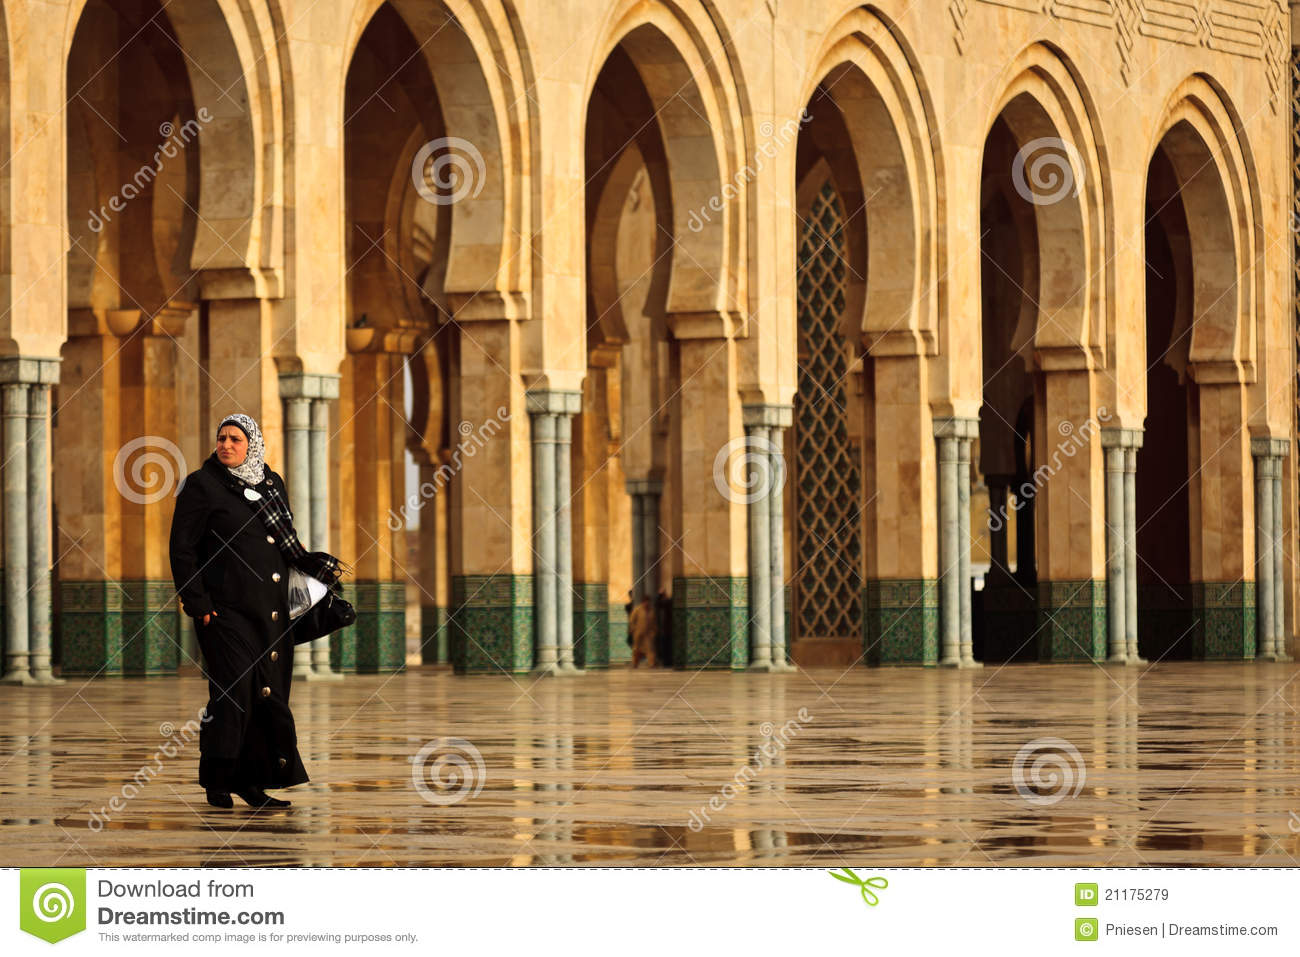 Woman walking in front of arches at mosque